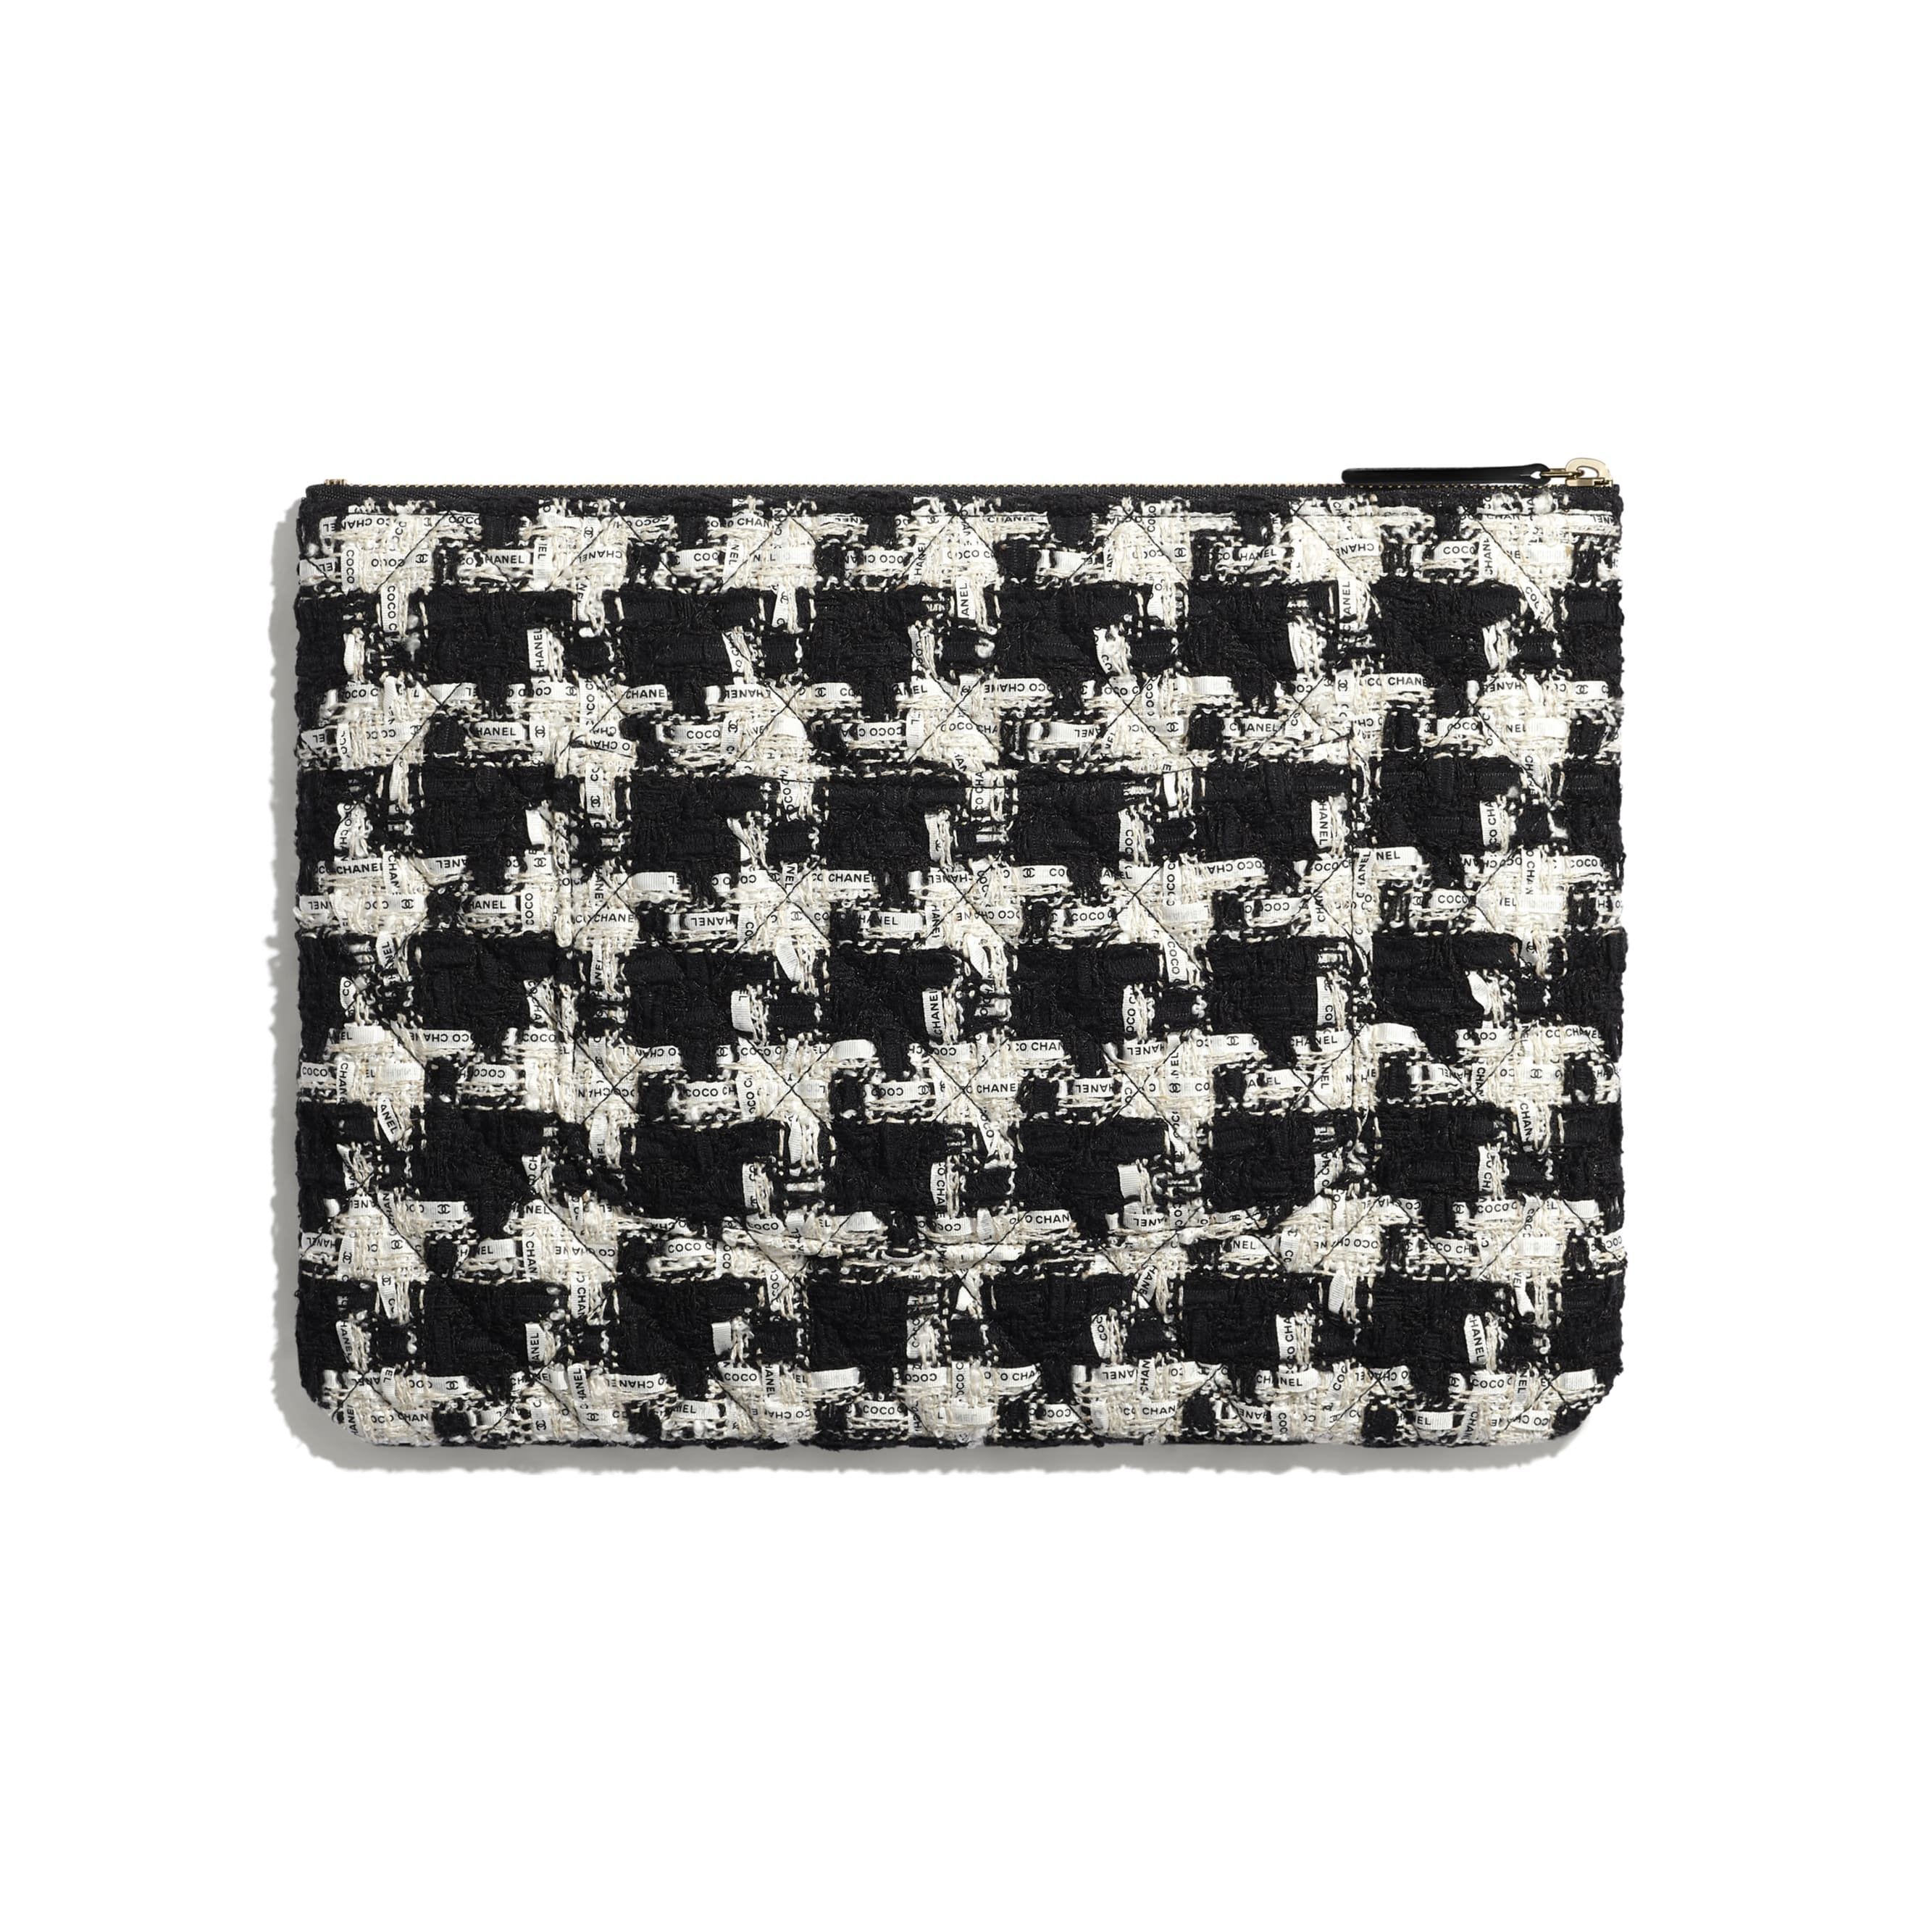 Classic Pouch - Black, Ecru & White - Tweed & Gold-Tone Metal - CHANEL - Alternative view - see standard sized version